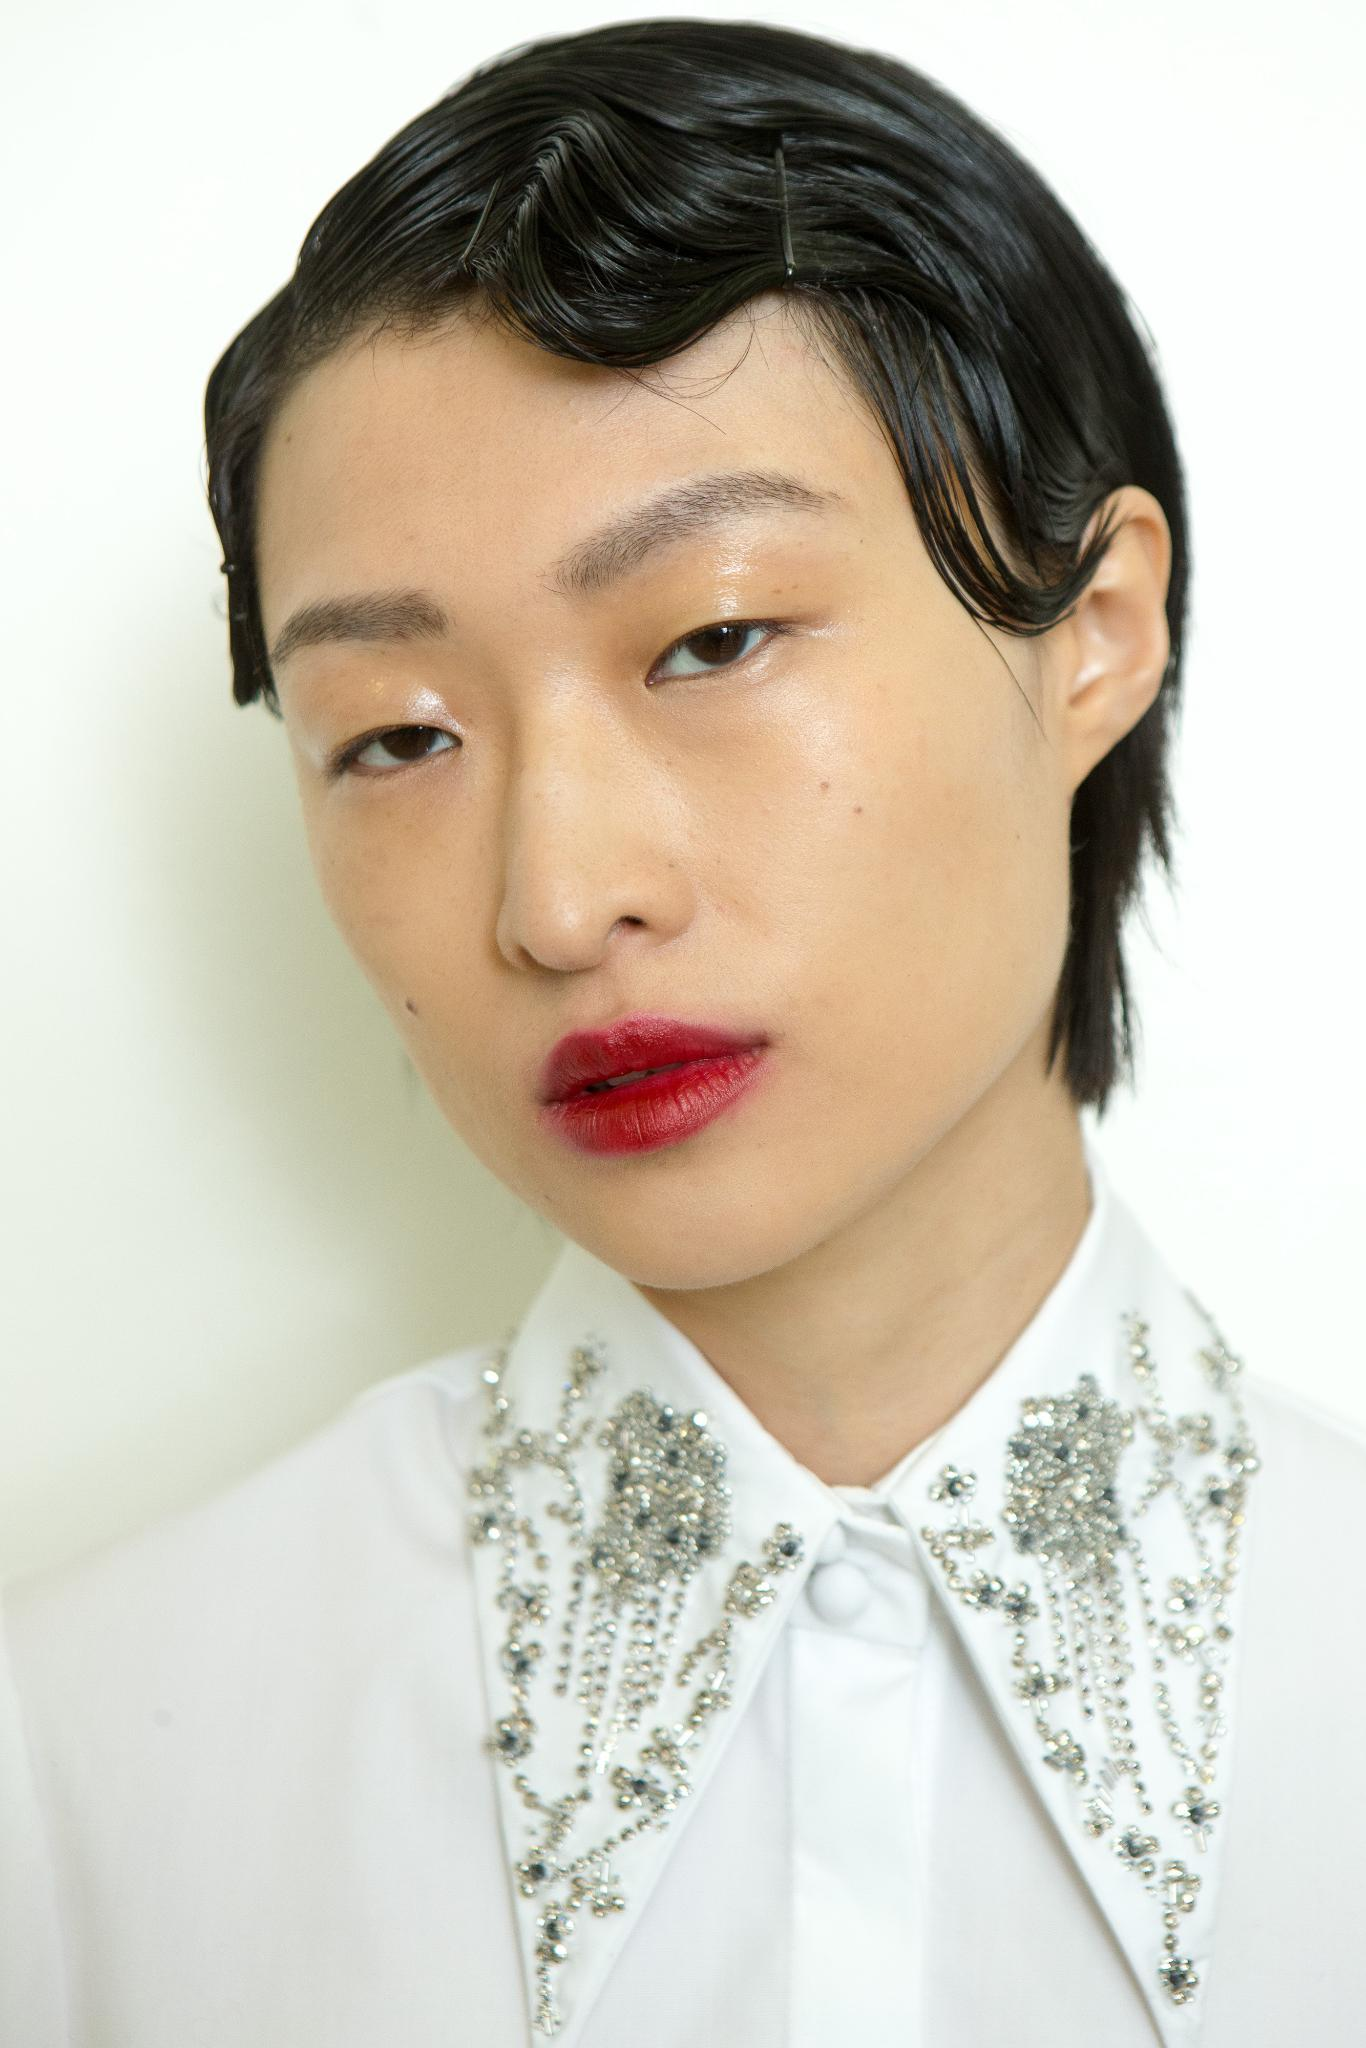 Christmas hairstyles: Asian model with short brown hair with finger waves detail along the hairline wearing a white shirt and red lipstick.